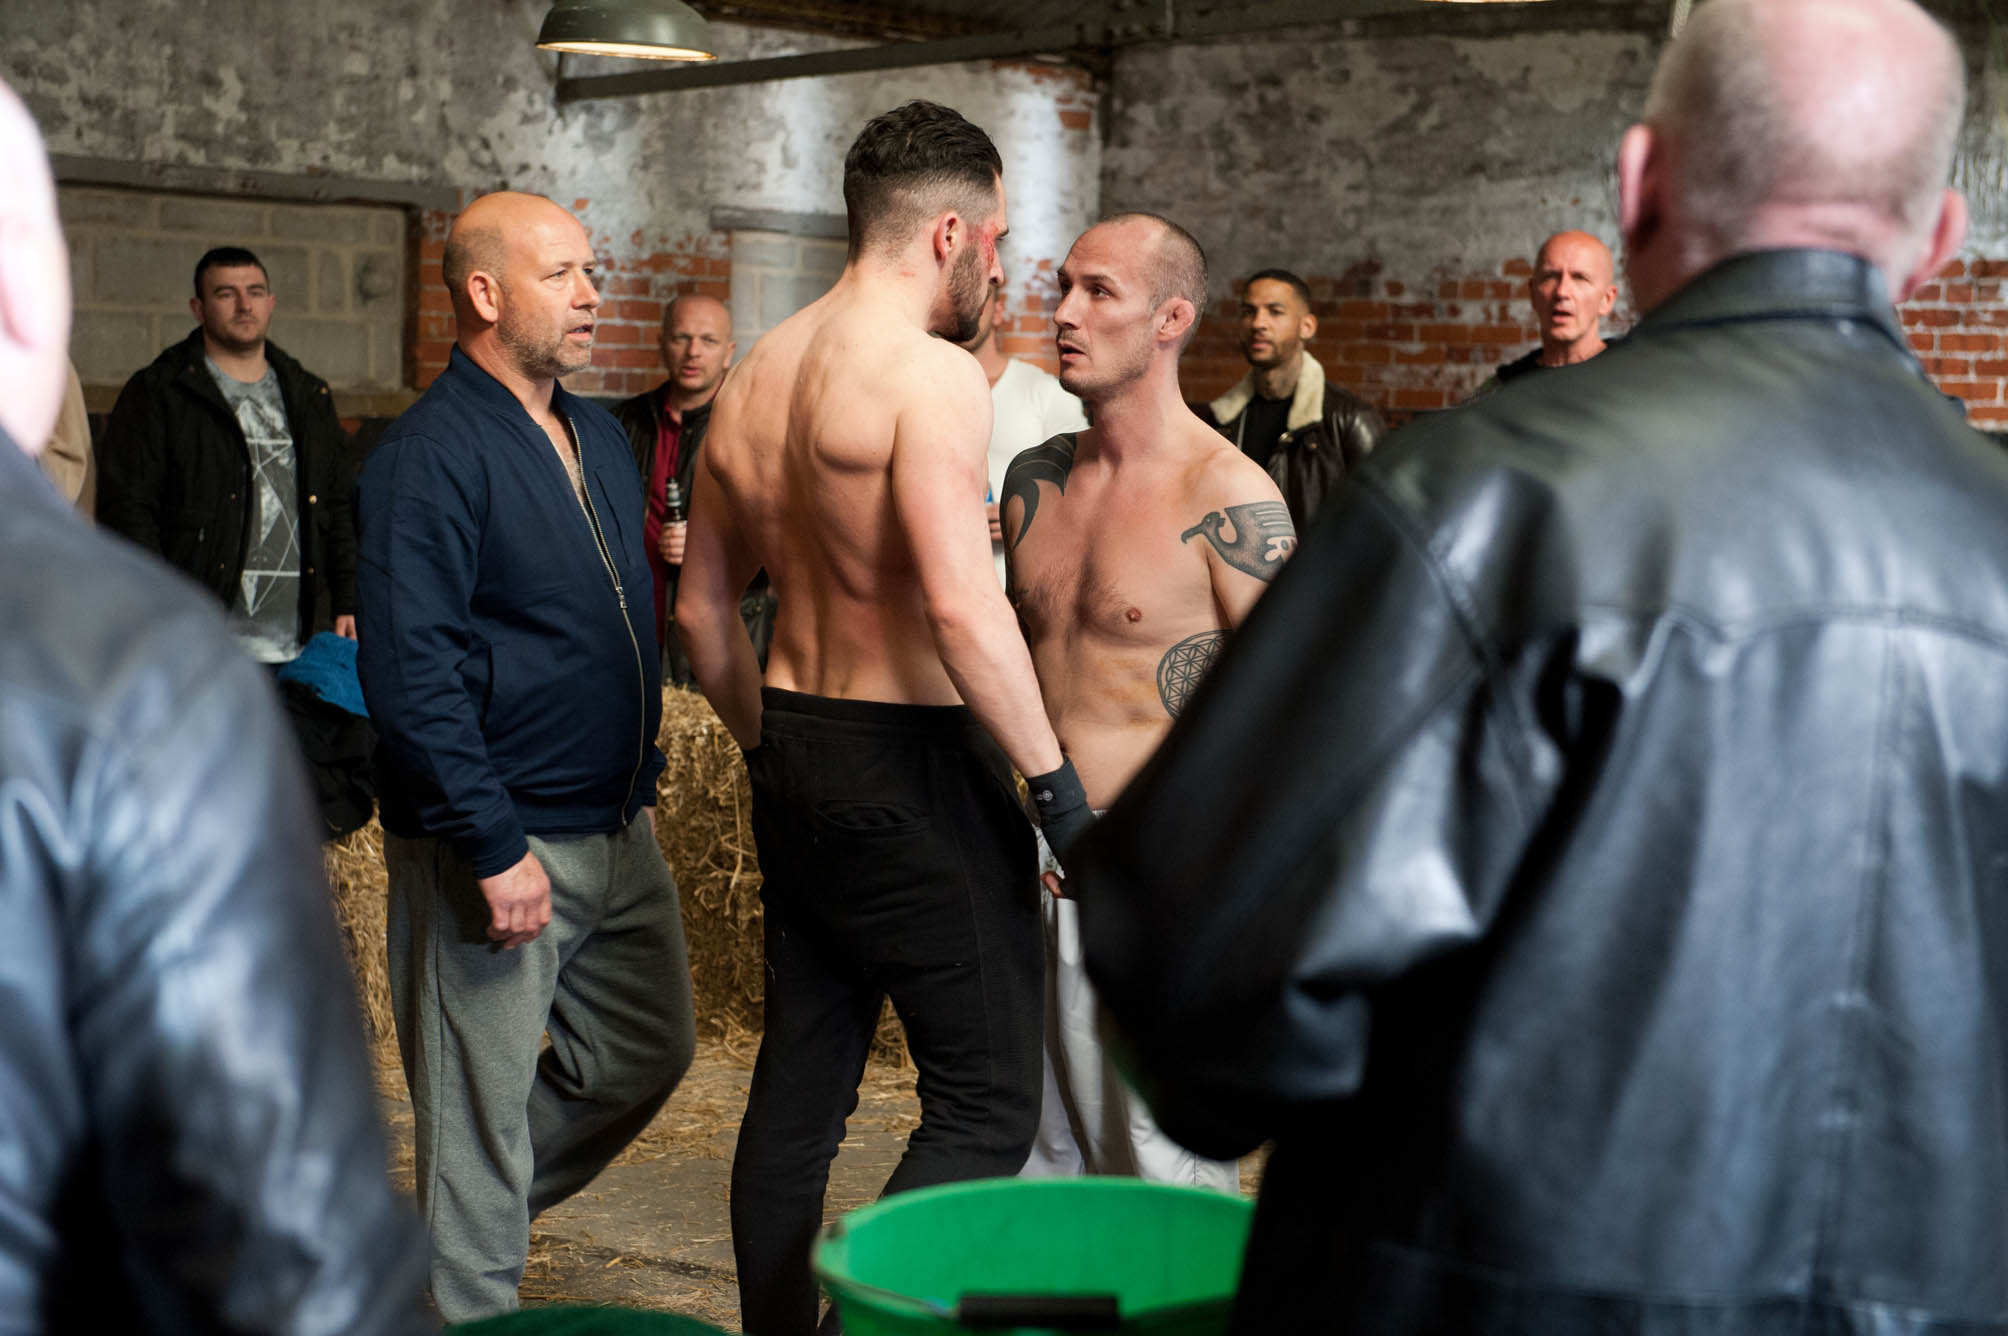 FROM ITV STRICT EMBARGO -TV Listings Magazines & websites Tuesday 19 May 2015, Newspapers Saturday 23 May 2015  Emmerdale - Ep 7191 Monday 25 May 2015  Debbie Dingle [CHARLEY WEBB] explains to Pete Barton [ANTHONY QUINLAN] and Finn Barton [JOE GILL] that Ross Barton [MICHAEL PARR], who is about to fight, is in trouble, urging them to help her find him. They soon find Ross at the venue preparing for his big fight, seemingly determined to go ahead.  Debbie and Cain Dingle [JEFF HORDLEY] are shocked to learn Zak Dingle [STEVE HALLIWELL] pawned all Lisa's jewellery to bet on Ross winning the fight. As the fight ensues it makes for uncomfortable viewing, but when Debbie witnesses an exchange between Ross and Charlie she realises there's more riding on this than meets the eye. Will Debbie get through to Ross? And what will Pete make of Debbie's over concern for his brother?   Picture contact: david.crook@itv.com on 0161 952 6214 Photographer - Amy Brammall This photograph is (C) ITV Plc and can only be reproduced for editorial purposes directly in connection with the programme or event mentioned above, or ITV plc. Once made available by ITV plc Picture Desk, this photograph can be reproduced once only up until the transmission [TX] date and no reproduction fee will be charged. Any subsequent usage may incur a fee. This photograph must not be manipulated [excluding basic cropping] in a manner which alters the visual appearance of the person photographed deemed detrimental or inappropriate by ITV plc Picture Desk. This photograph must not be syndicated to any other company, publication or website, or permanently archived, without the express written permission of ITV Plc Picture Desk. Full Terms and conditions are available on the website www.itvpictures.com